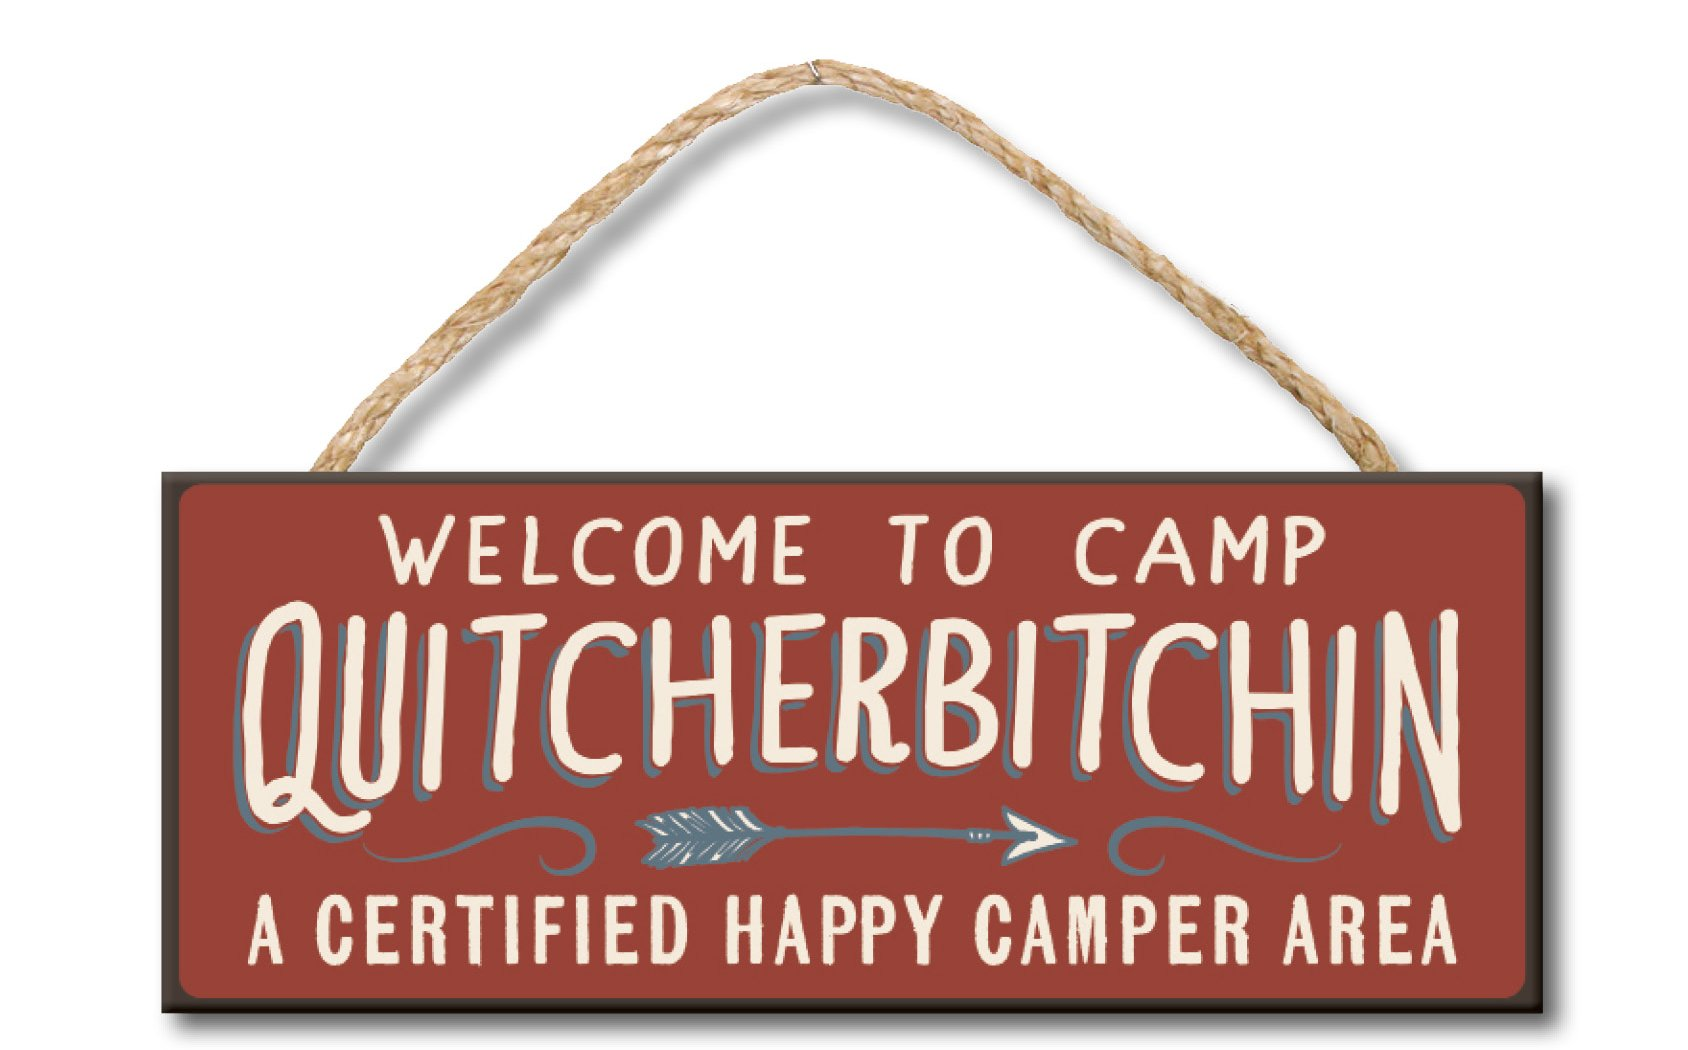 Welcome to Camp Quitcherbitchin - 4x10 Hanging Wooden Sign by My Word! by My Word!